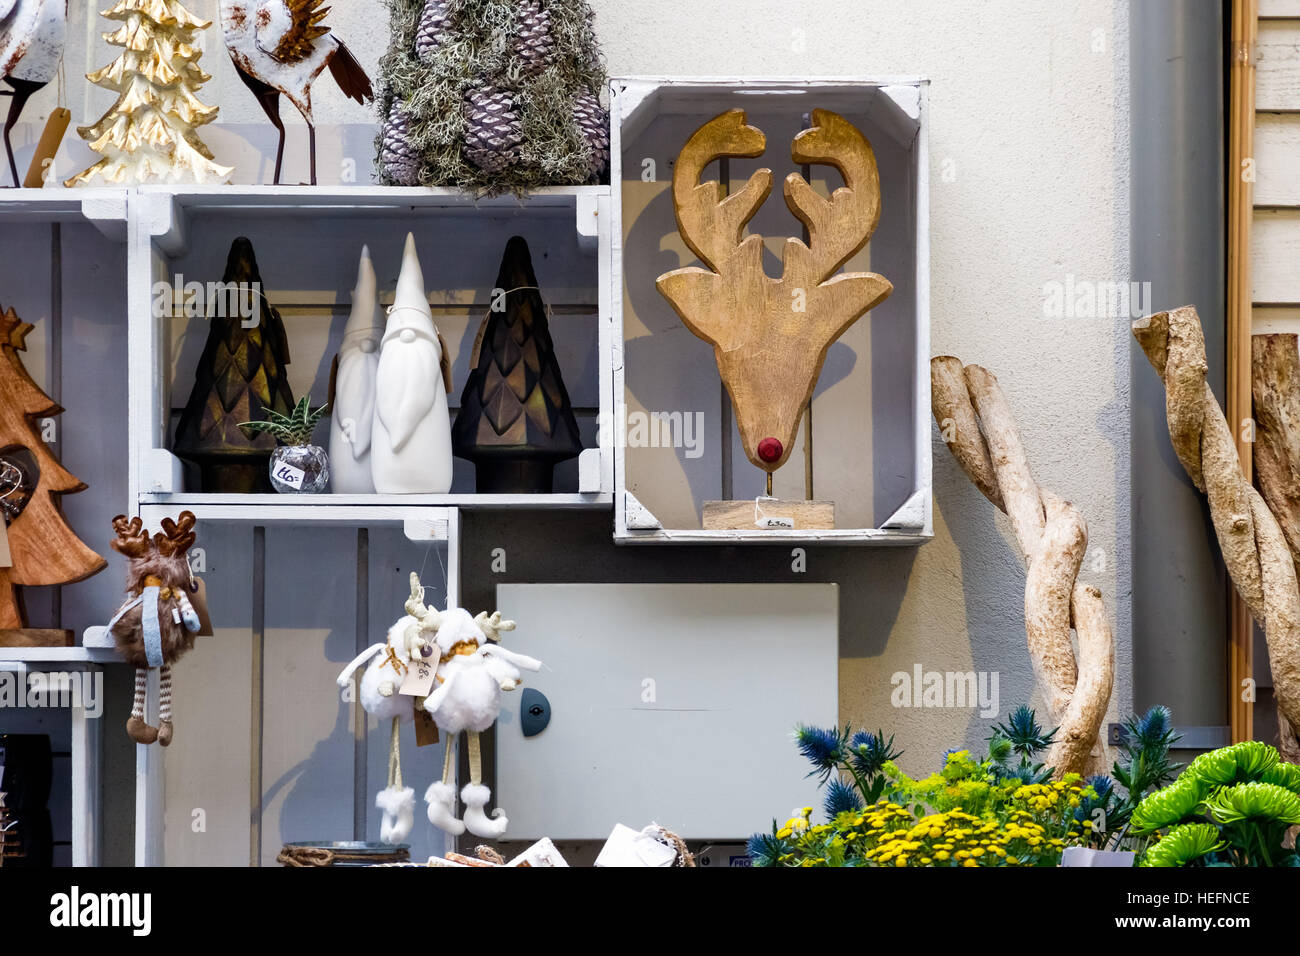 Christmas garden ornaments on display at Borough Market in London - Stock Image